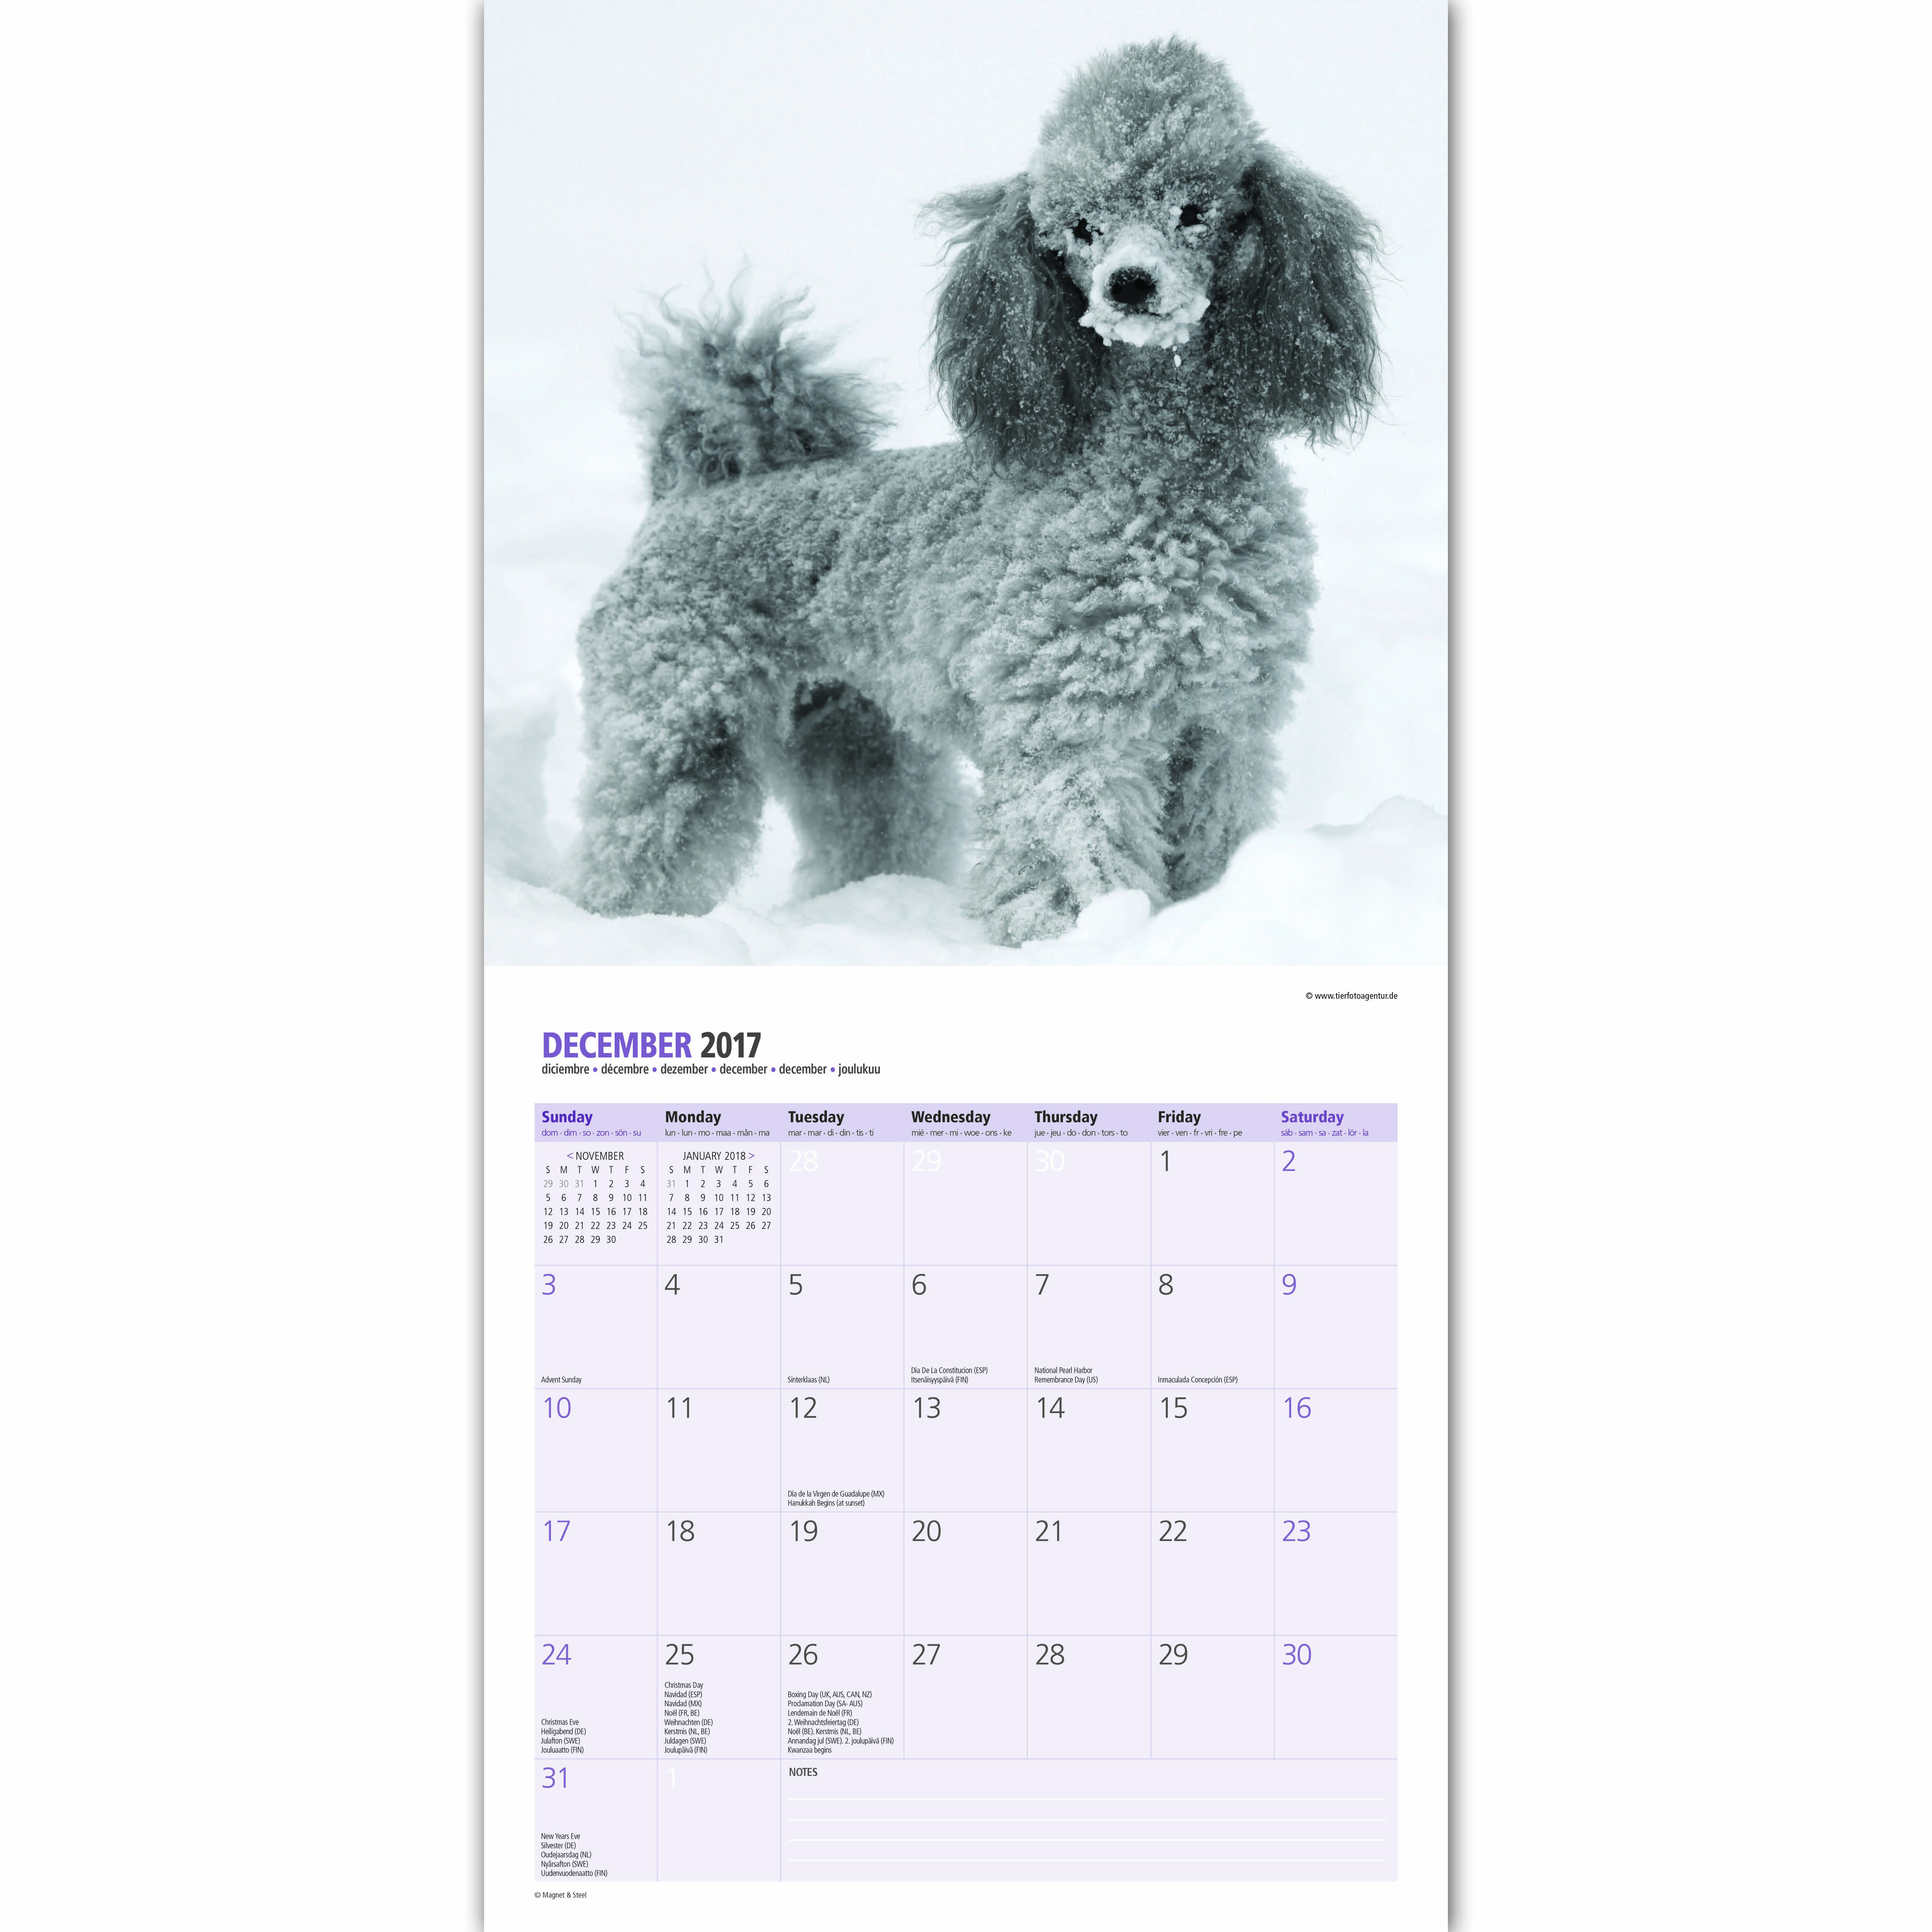 ... Calendar 2 2 of 3 Poodle - 2017 16 Month Traditional Calendar 3 3 of 3